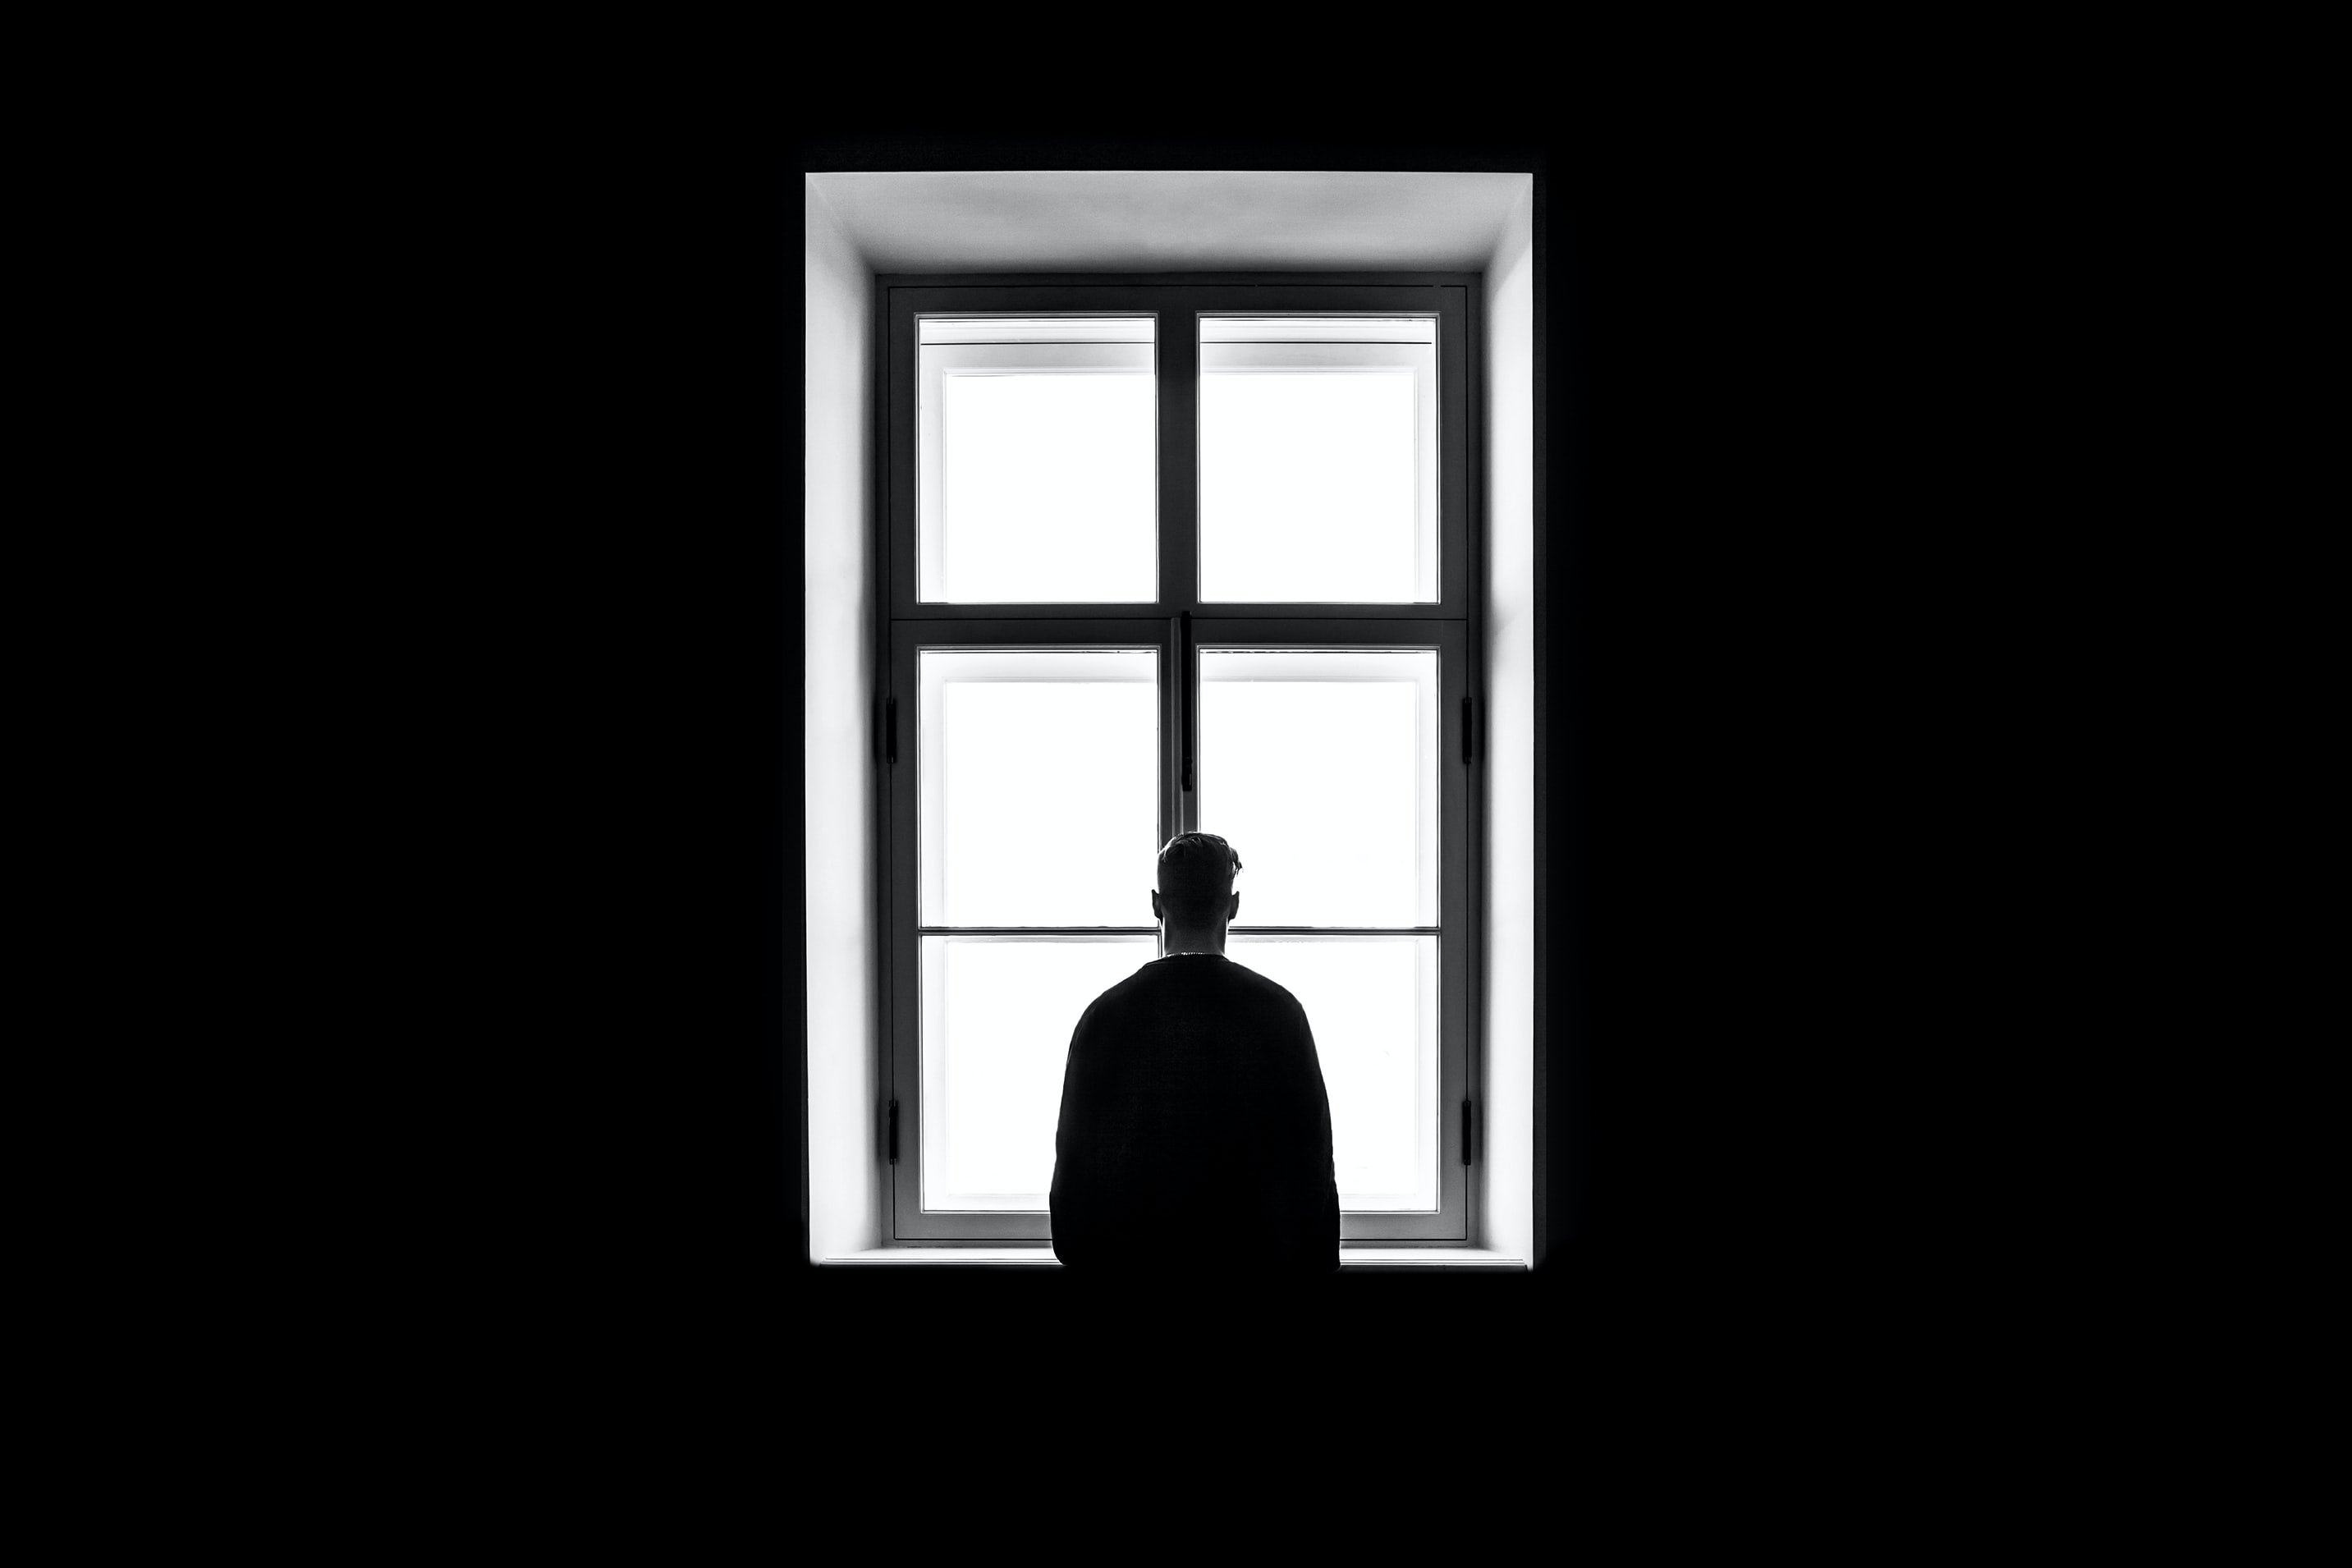 A shadowy figure stands in front of a window - all is black apart from the light from the window c.Sasha Freemind, Unsplash